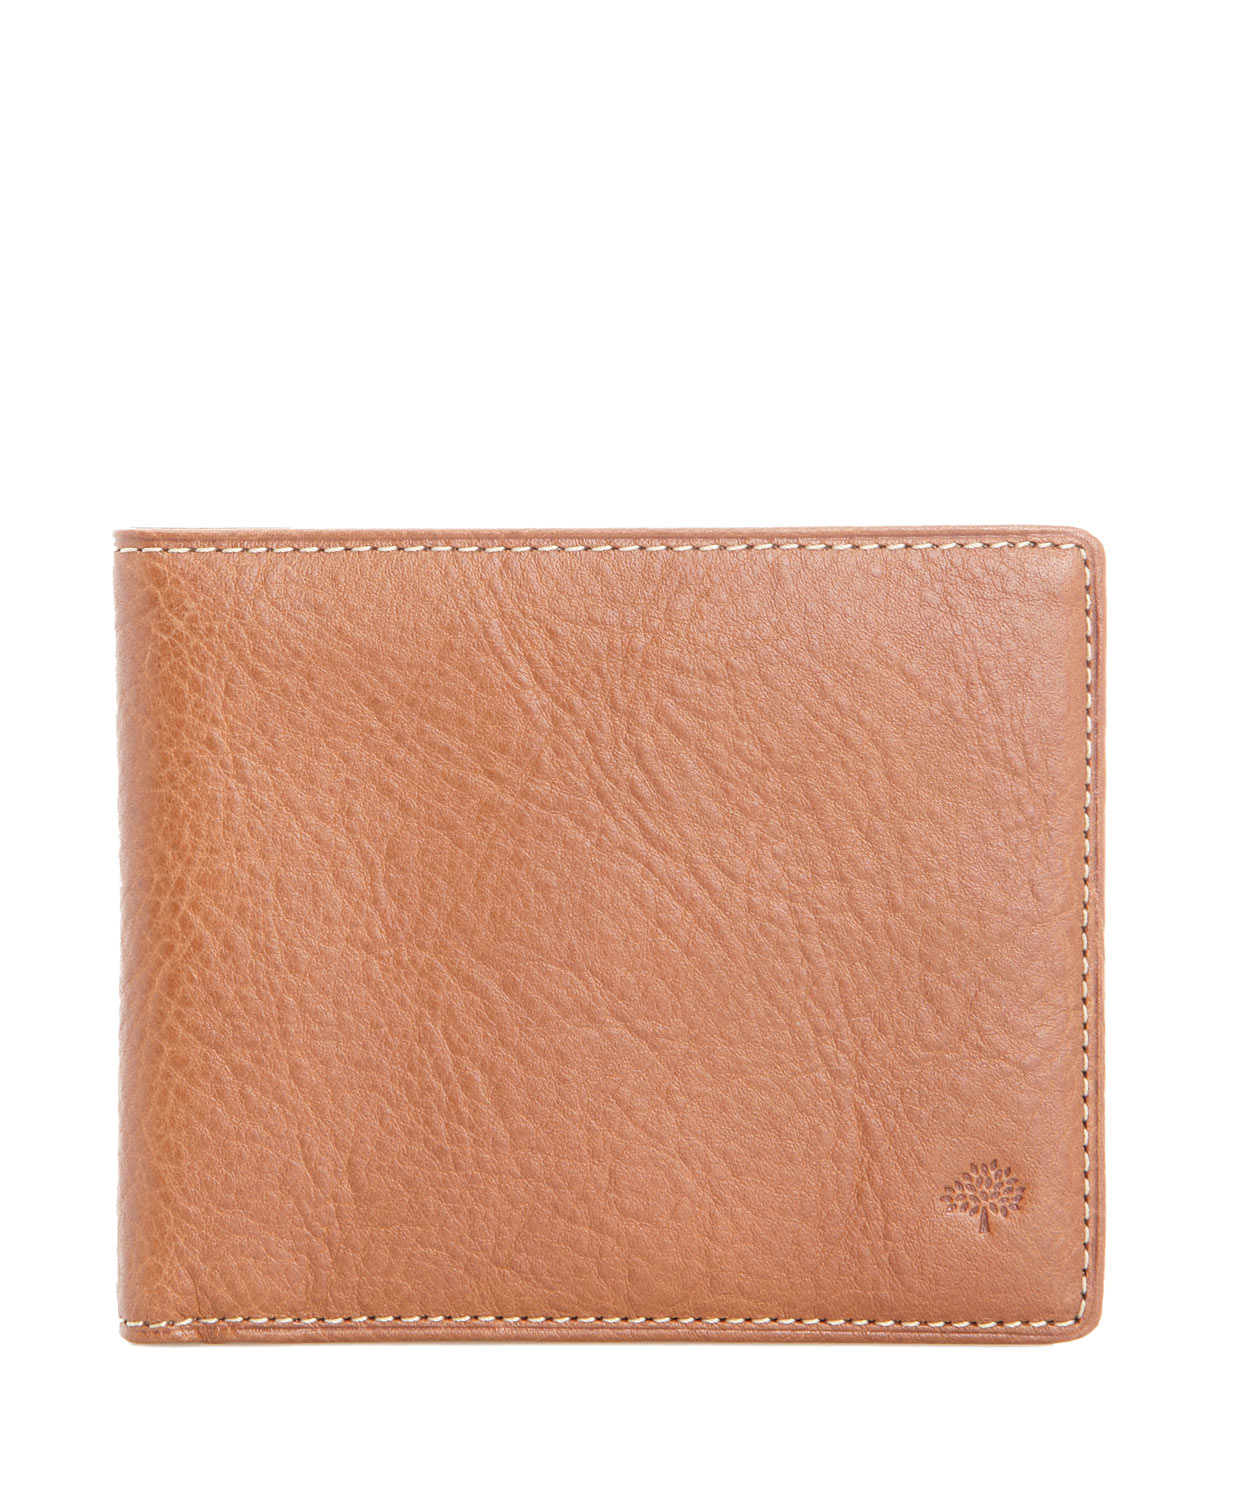 f470d0d4a28 Mulberry Tan Leather 8 Card Wallet in Orange for Men - Lyst